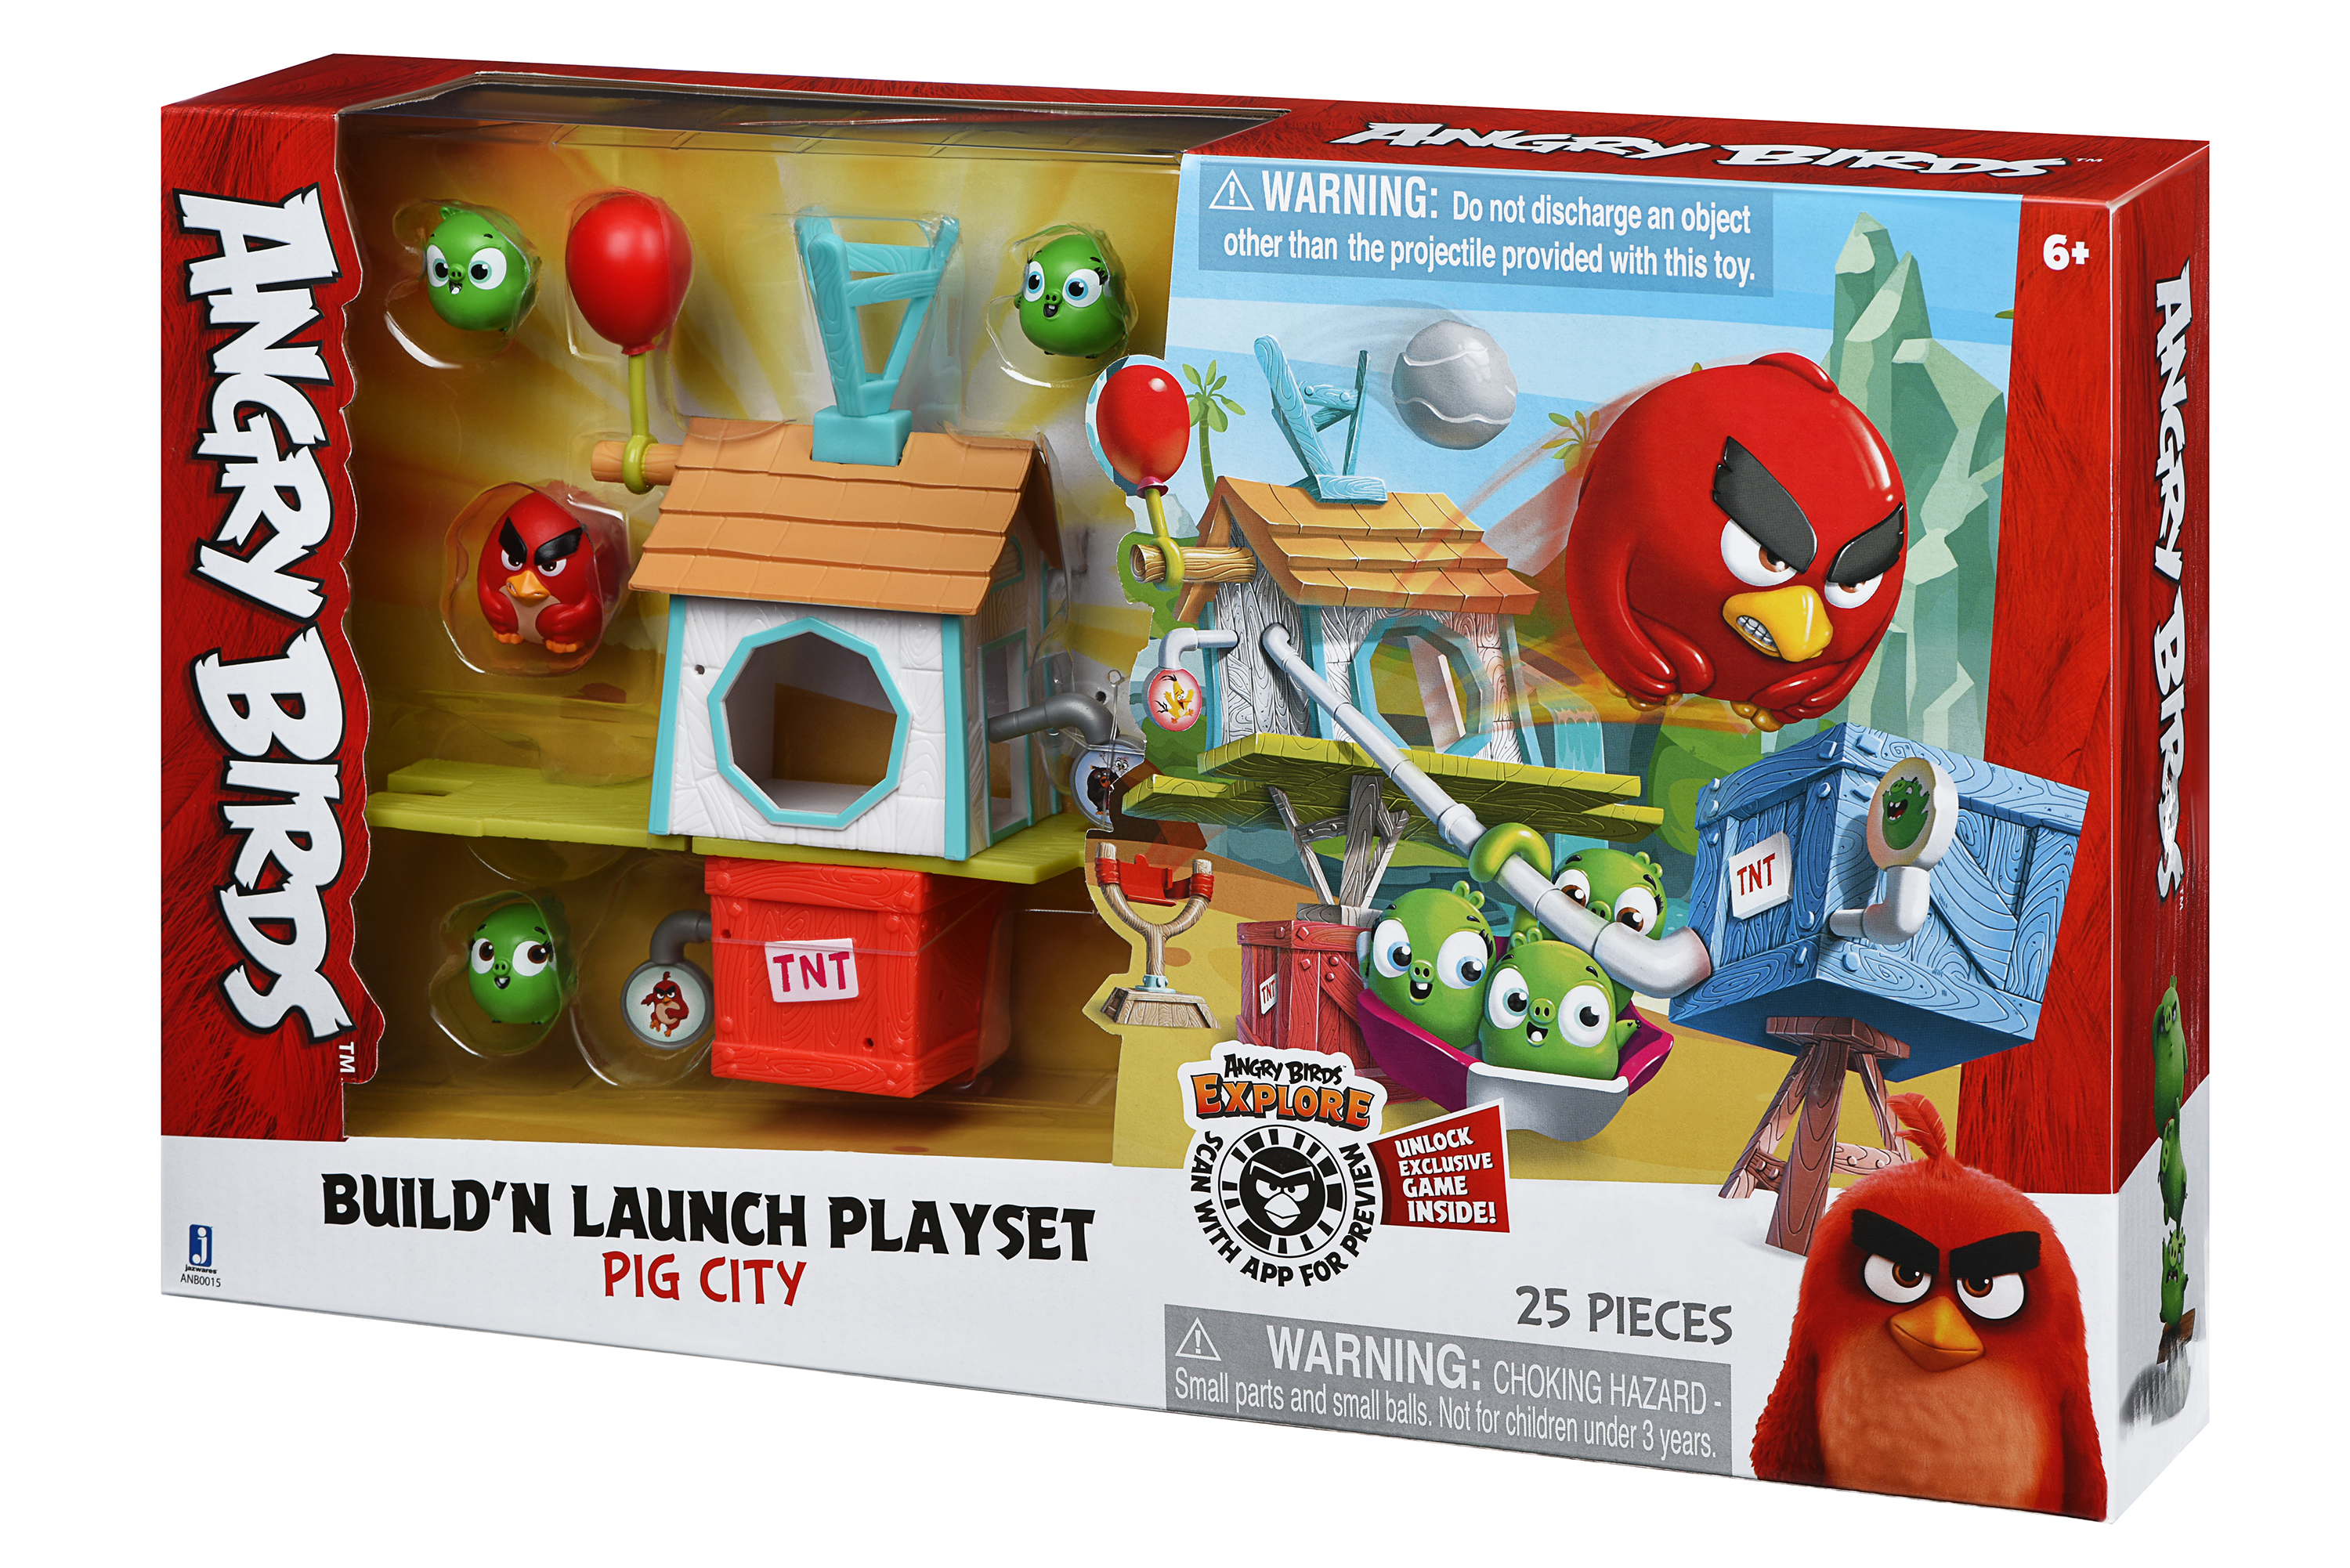 Angry Birds Ігрова фігурка ANB Medium Playset (Pig City Build 'n Launch Playset)